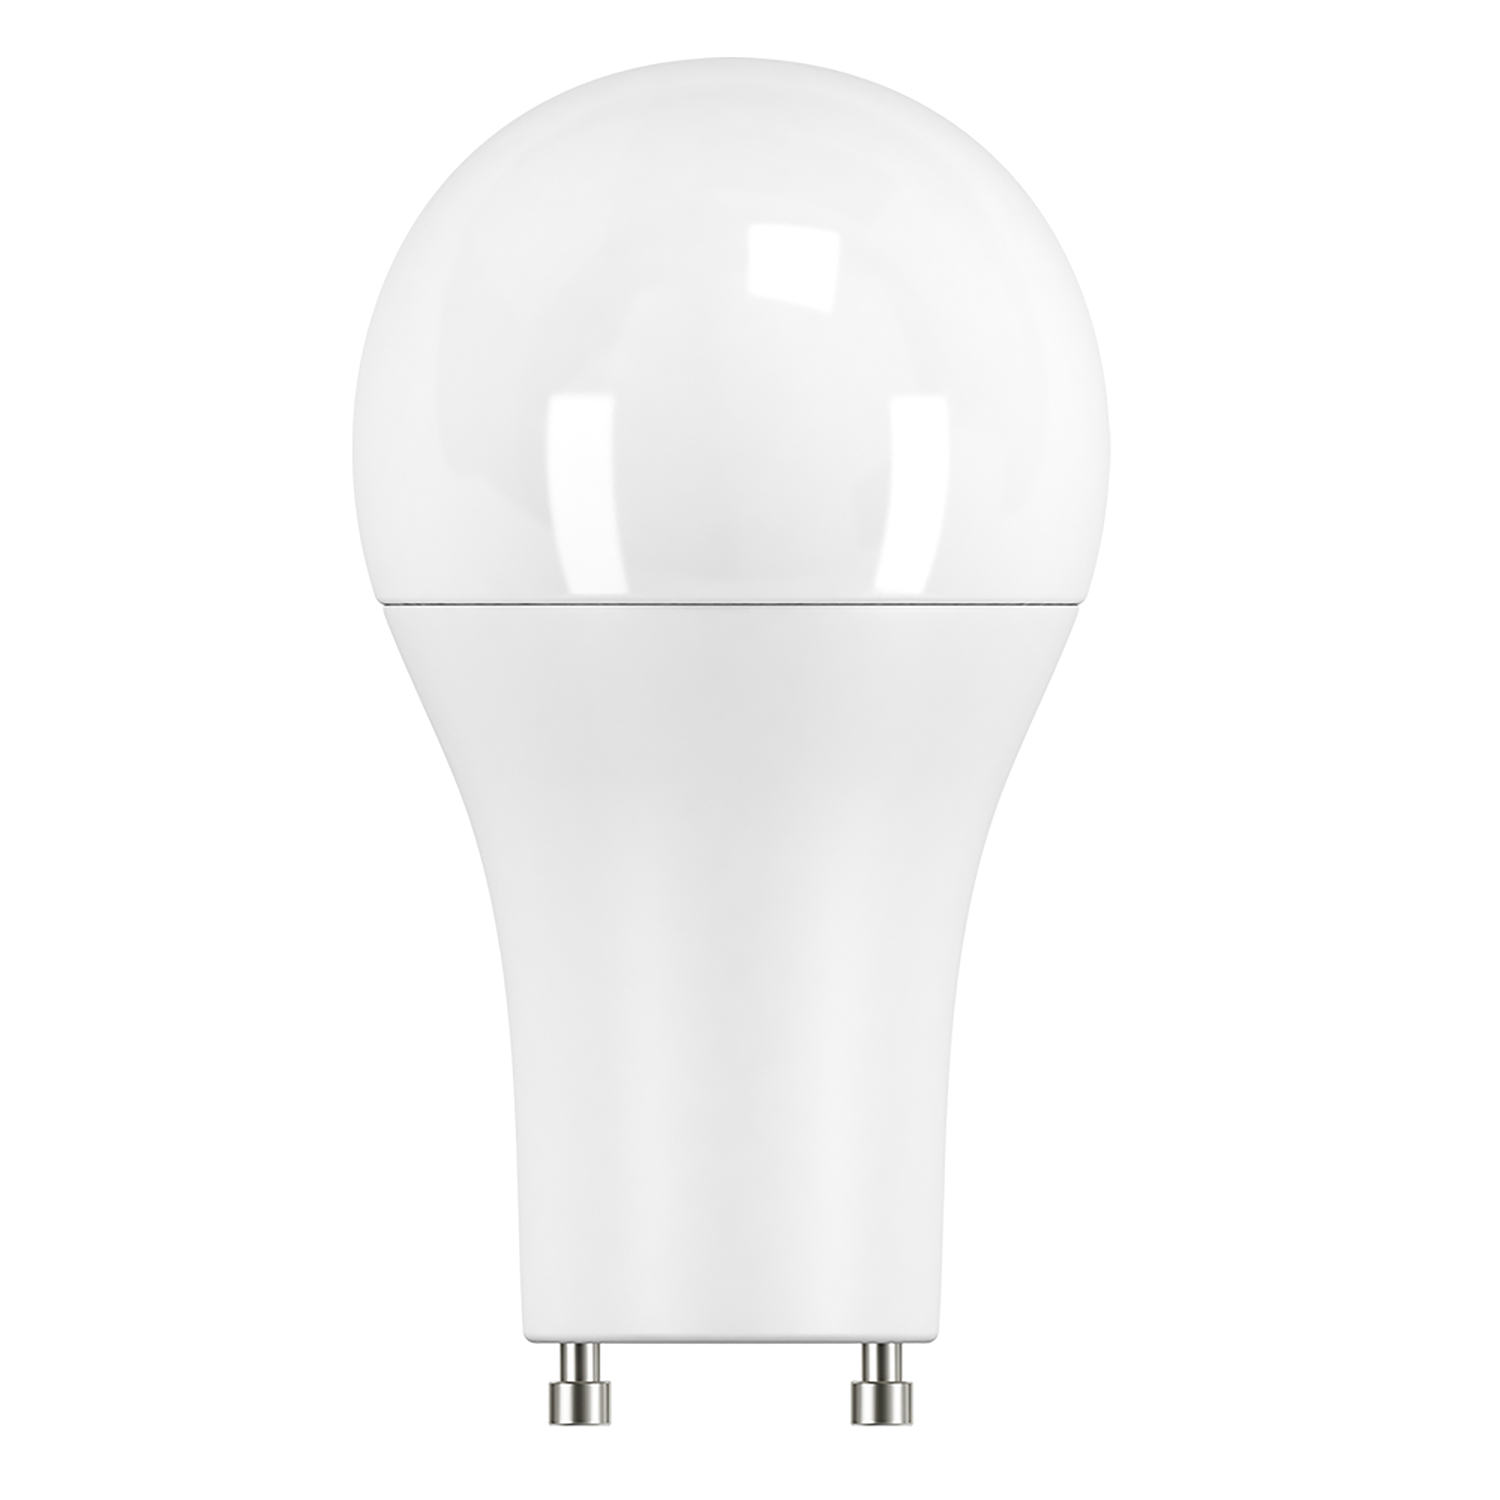 A19FR9/850/OMNI2/GU24/LED 83183 LED A19 9.5W 5000K GU24 NON-DIMMABLE OMNIDIRECTIONAL ProLED